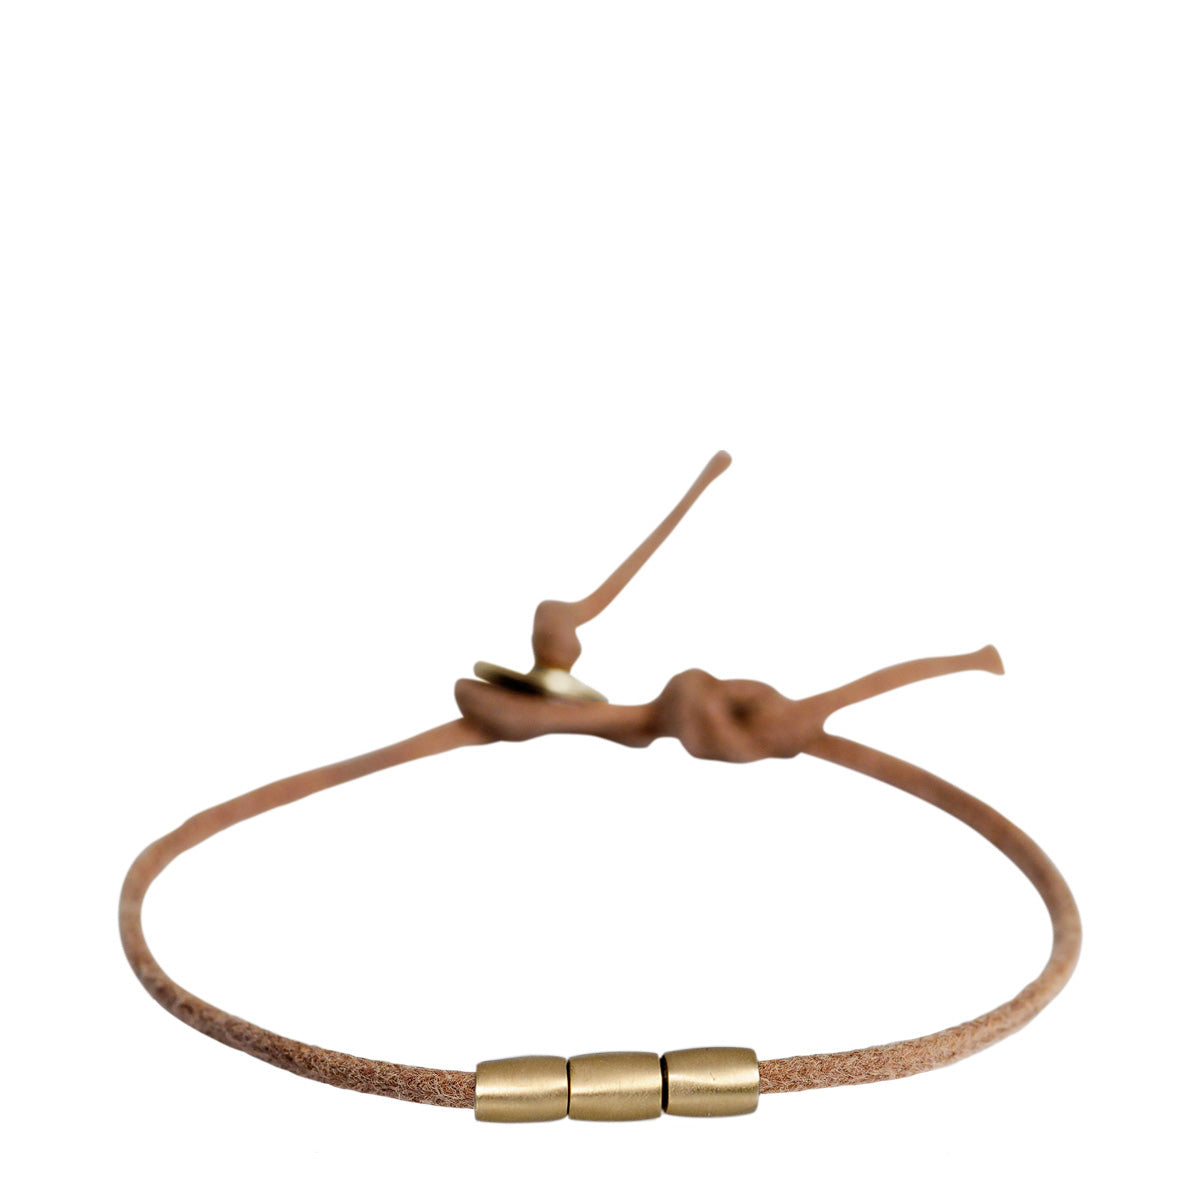 Men's 10K Gold 3 Bead Bracelet on Natural Cord